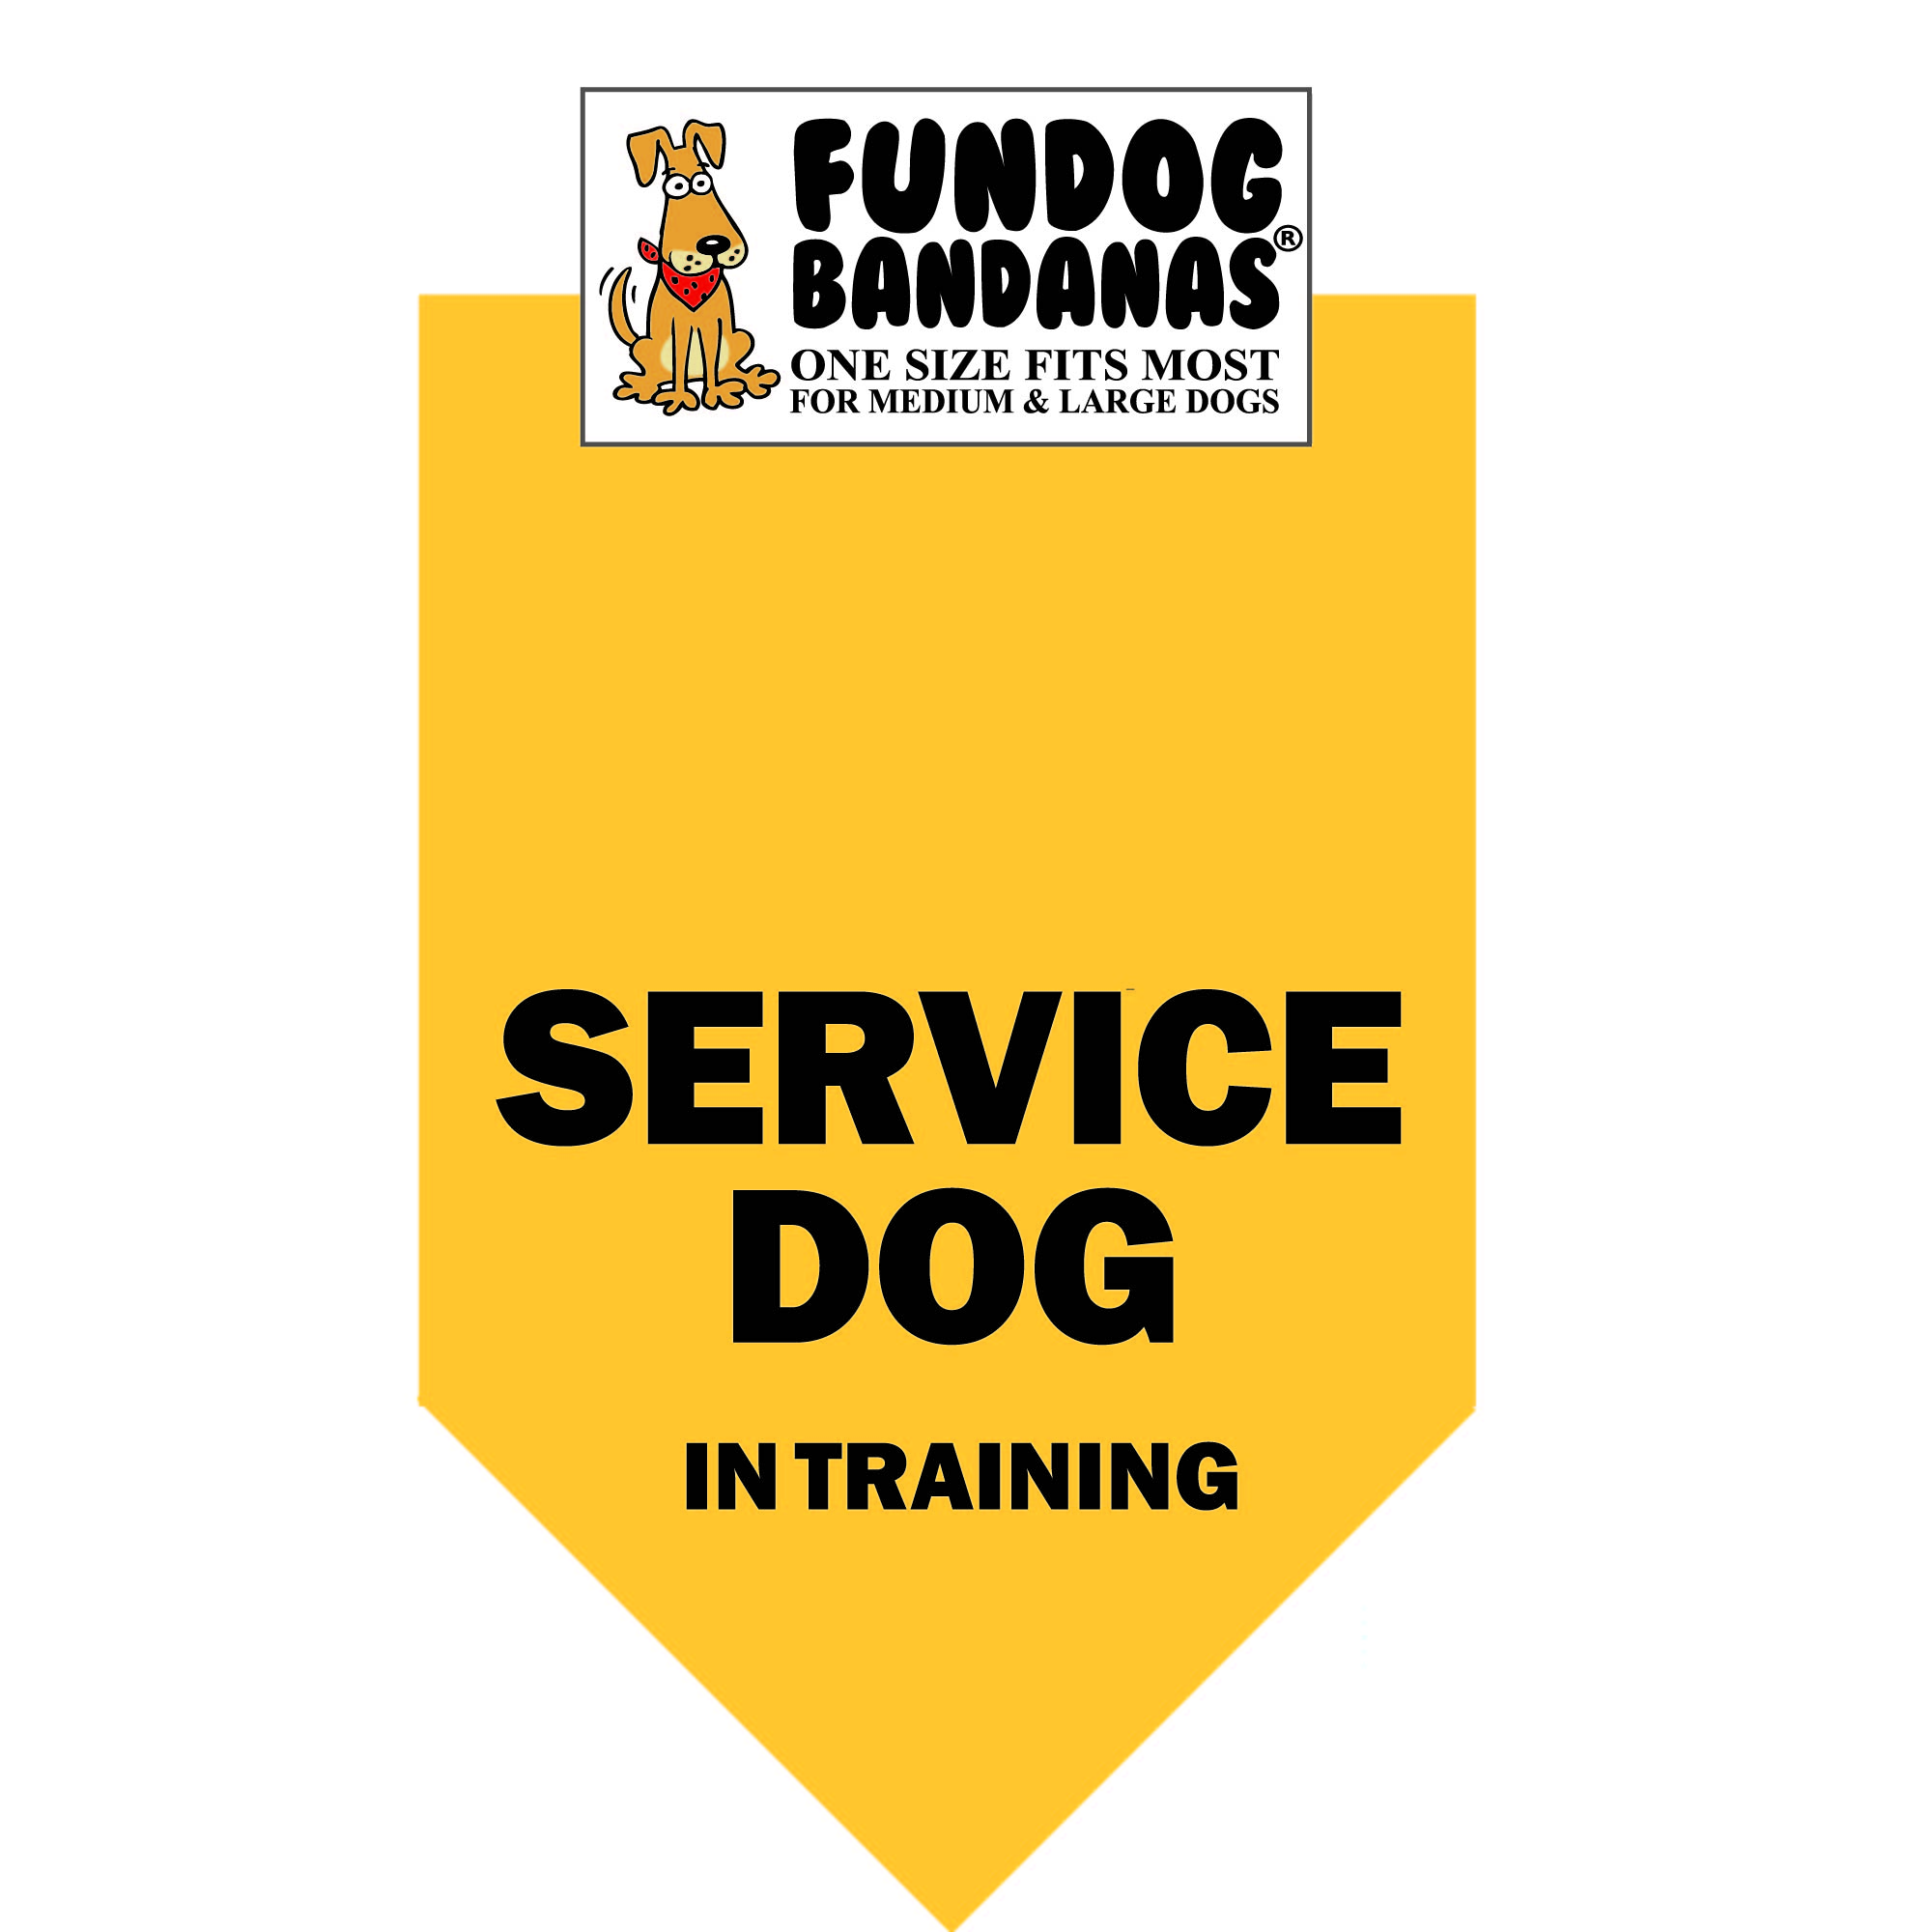 Fun Dog Bandana - Service Dog in Training - One Size Fits Most for Med to Lg Dogs, gold pet scarf